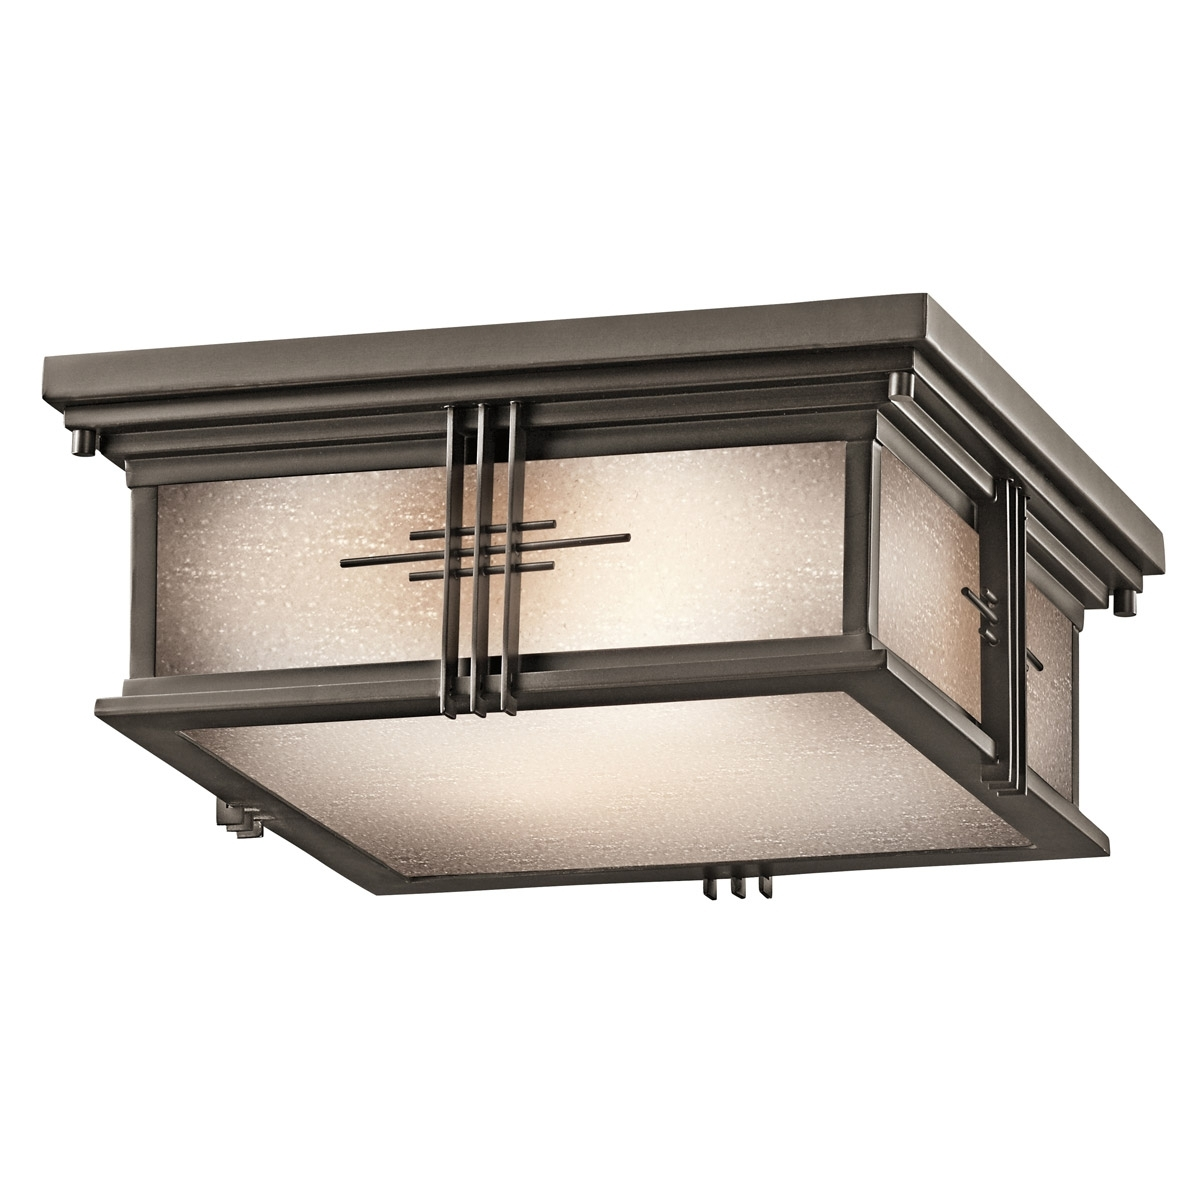 49164oz Portman Square Outdoor Flush Mount Ceiling Fixture Regarding Well Known Cheap Outdoor Ceiling Lights (View 8 of 20)